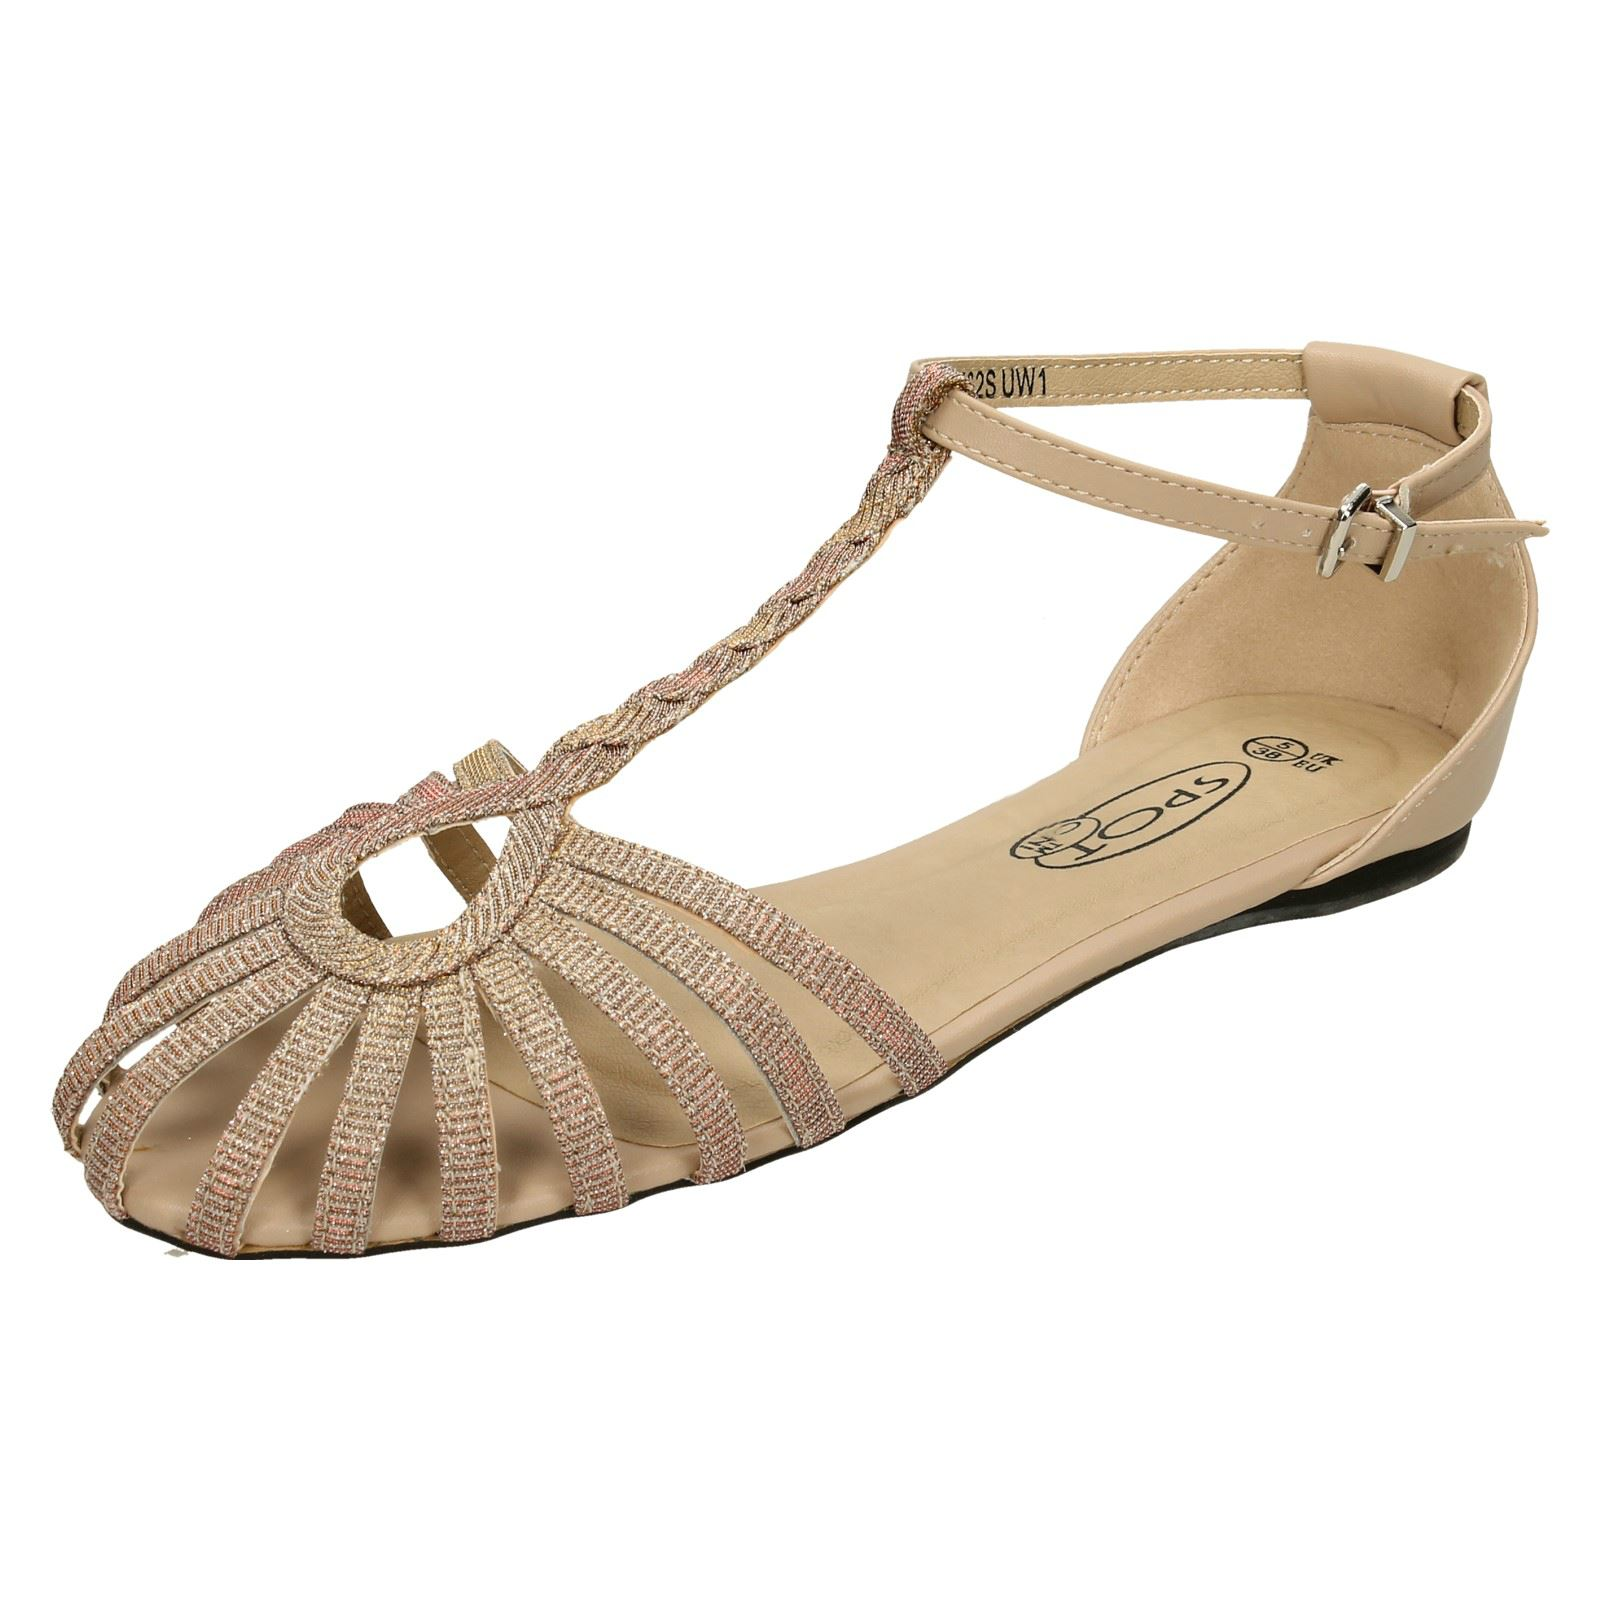 Details about Ladies Spot On Flat T Bar Strappy *Sandals*